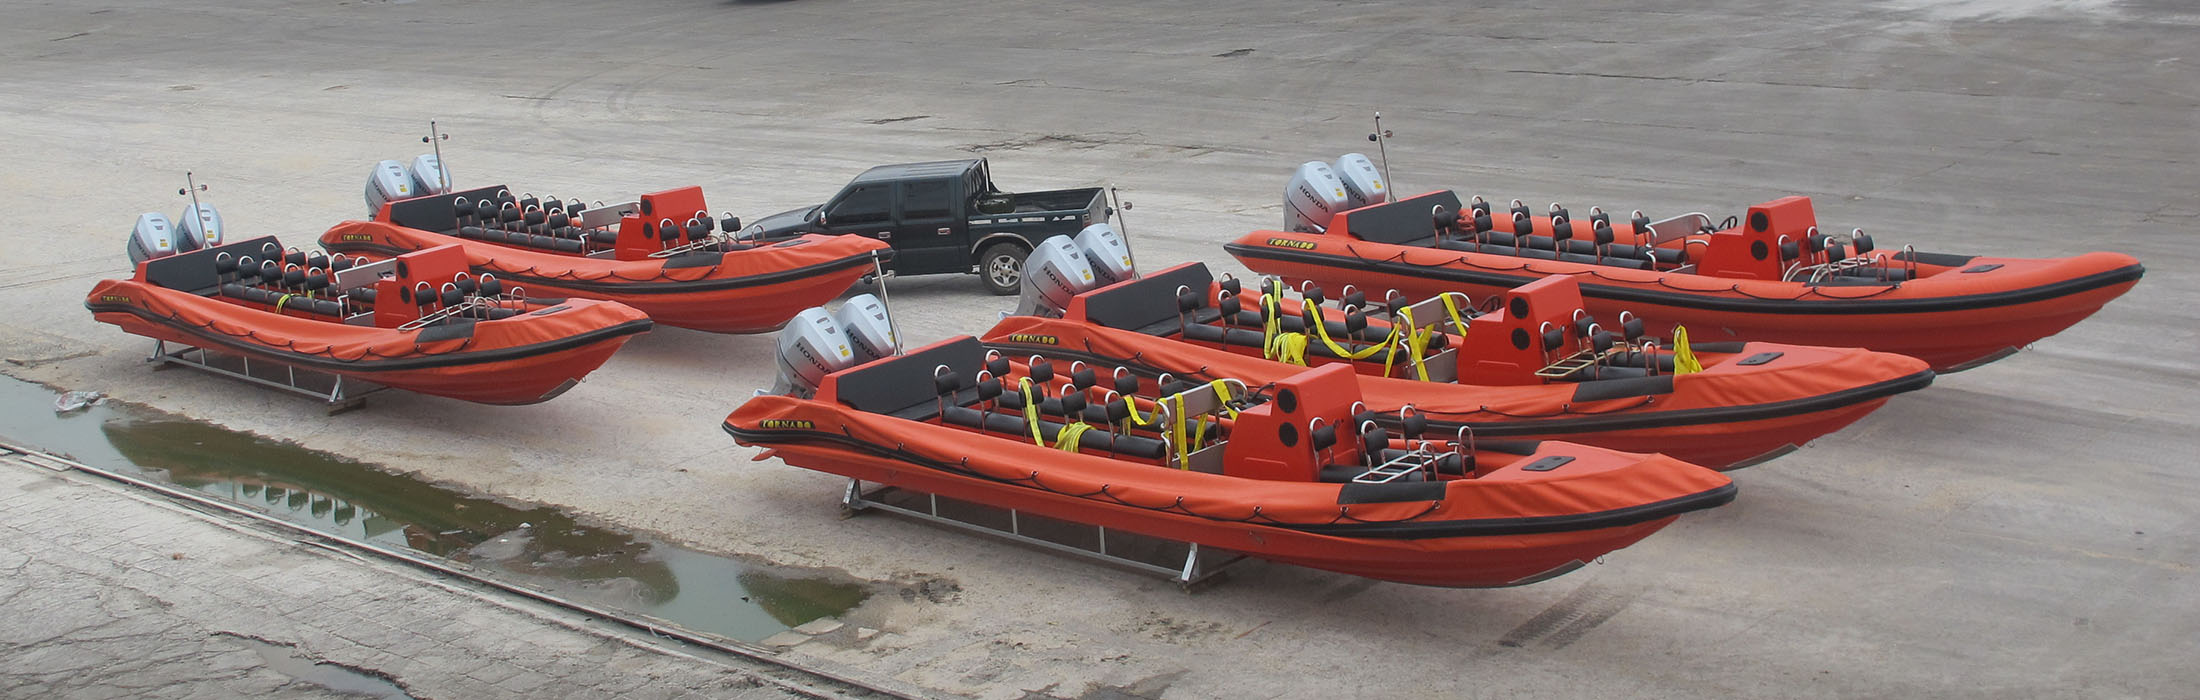 Tornado Boats - The Worlds Toughest Rigid Inflatable Boats